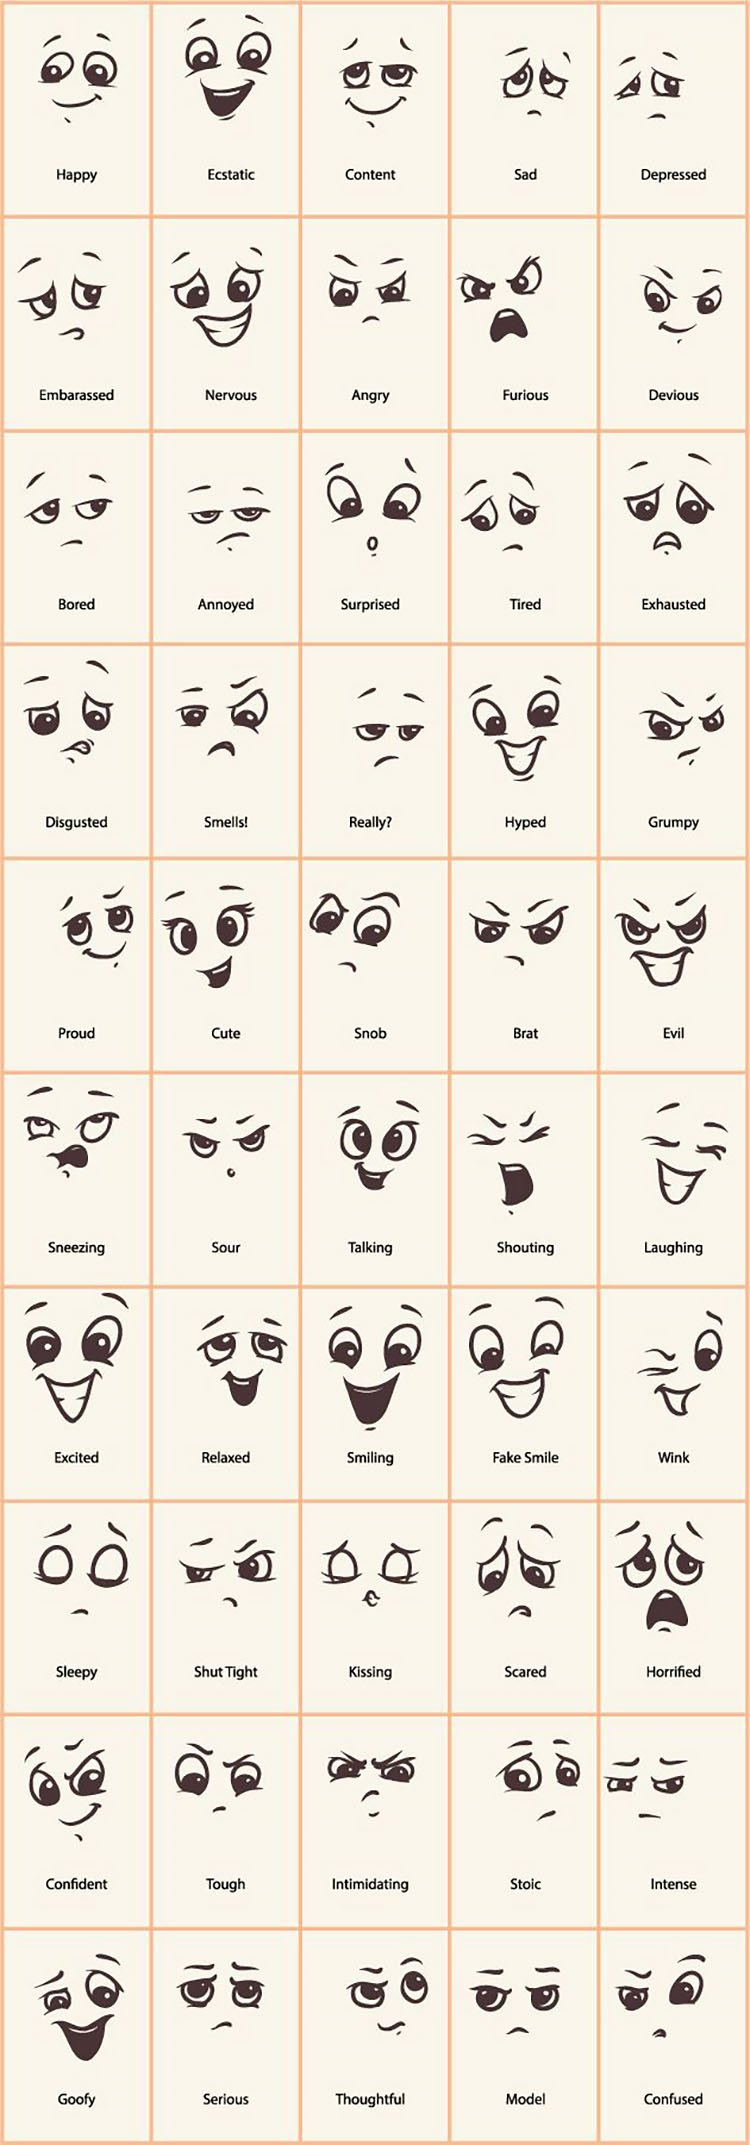 SIMPLE EYE AND MOUTH EXPRESSIONS